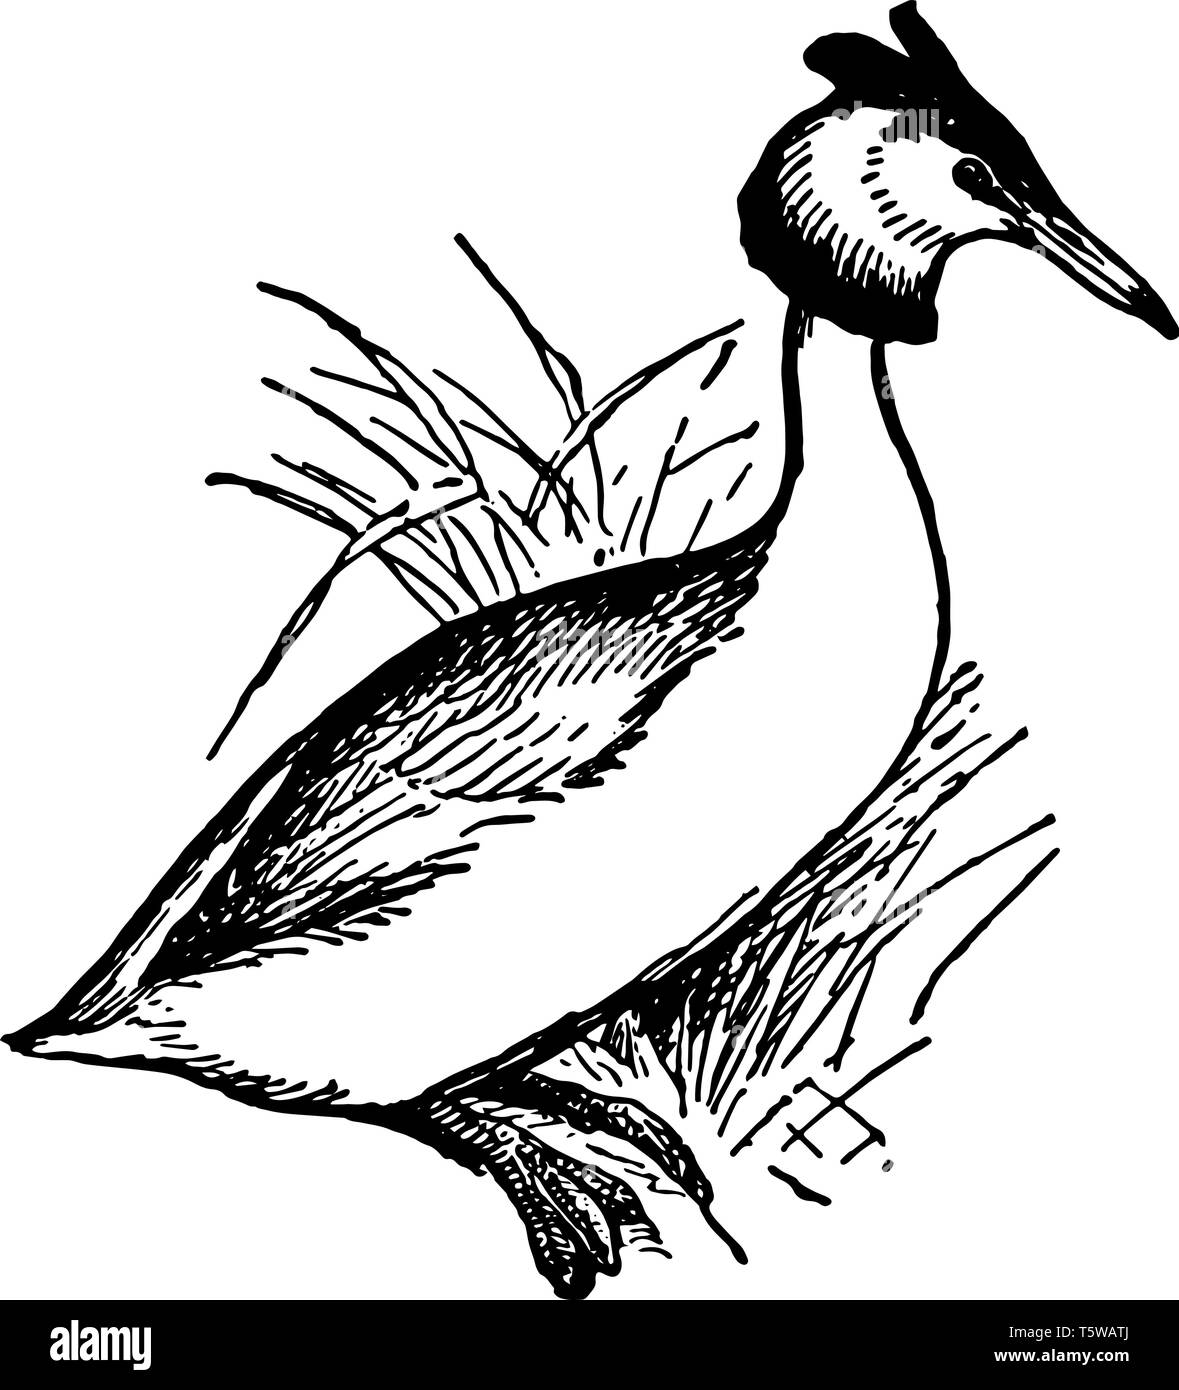 Great Crested Grebe is a fresh water migratory diving bird of the family Podicipidae, vintage line drawing or engraving illustration. - Stock Vector